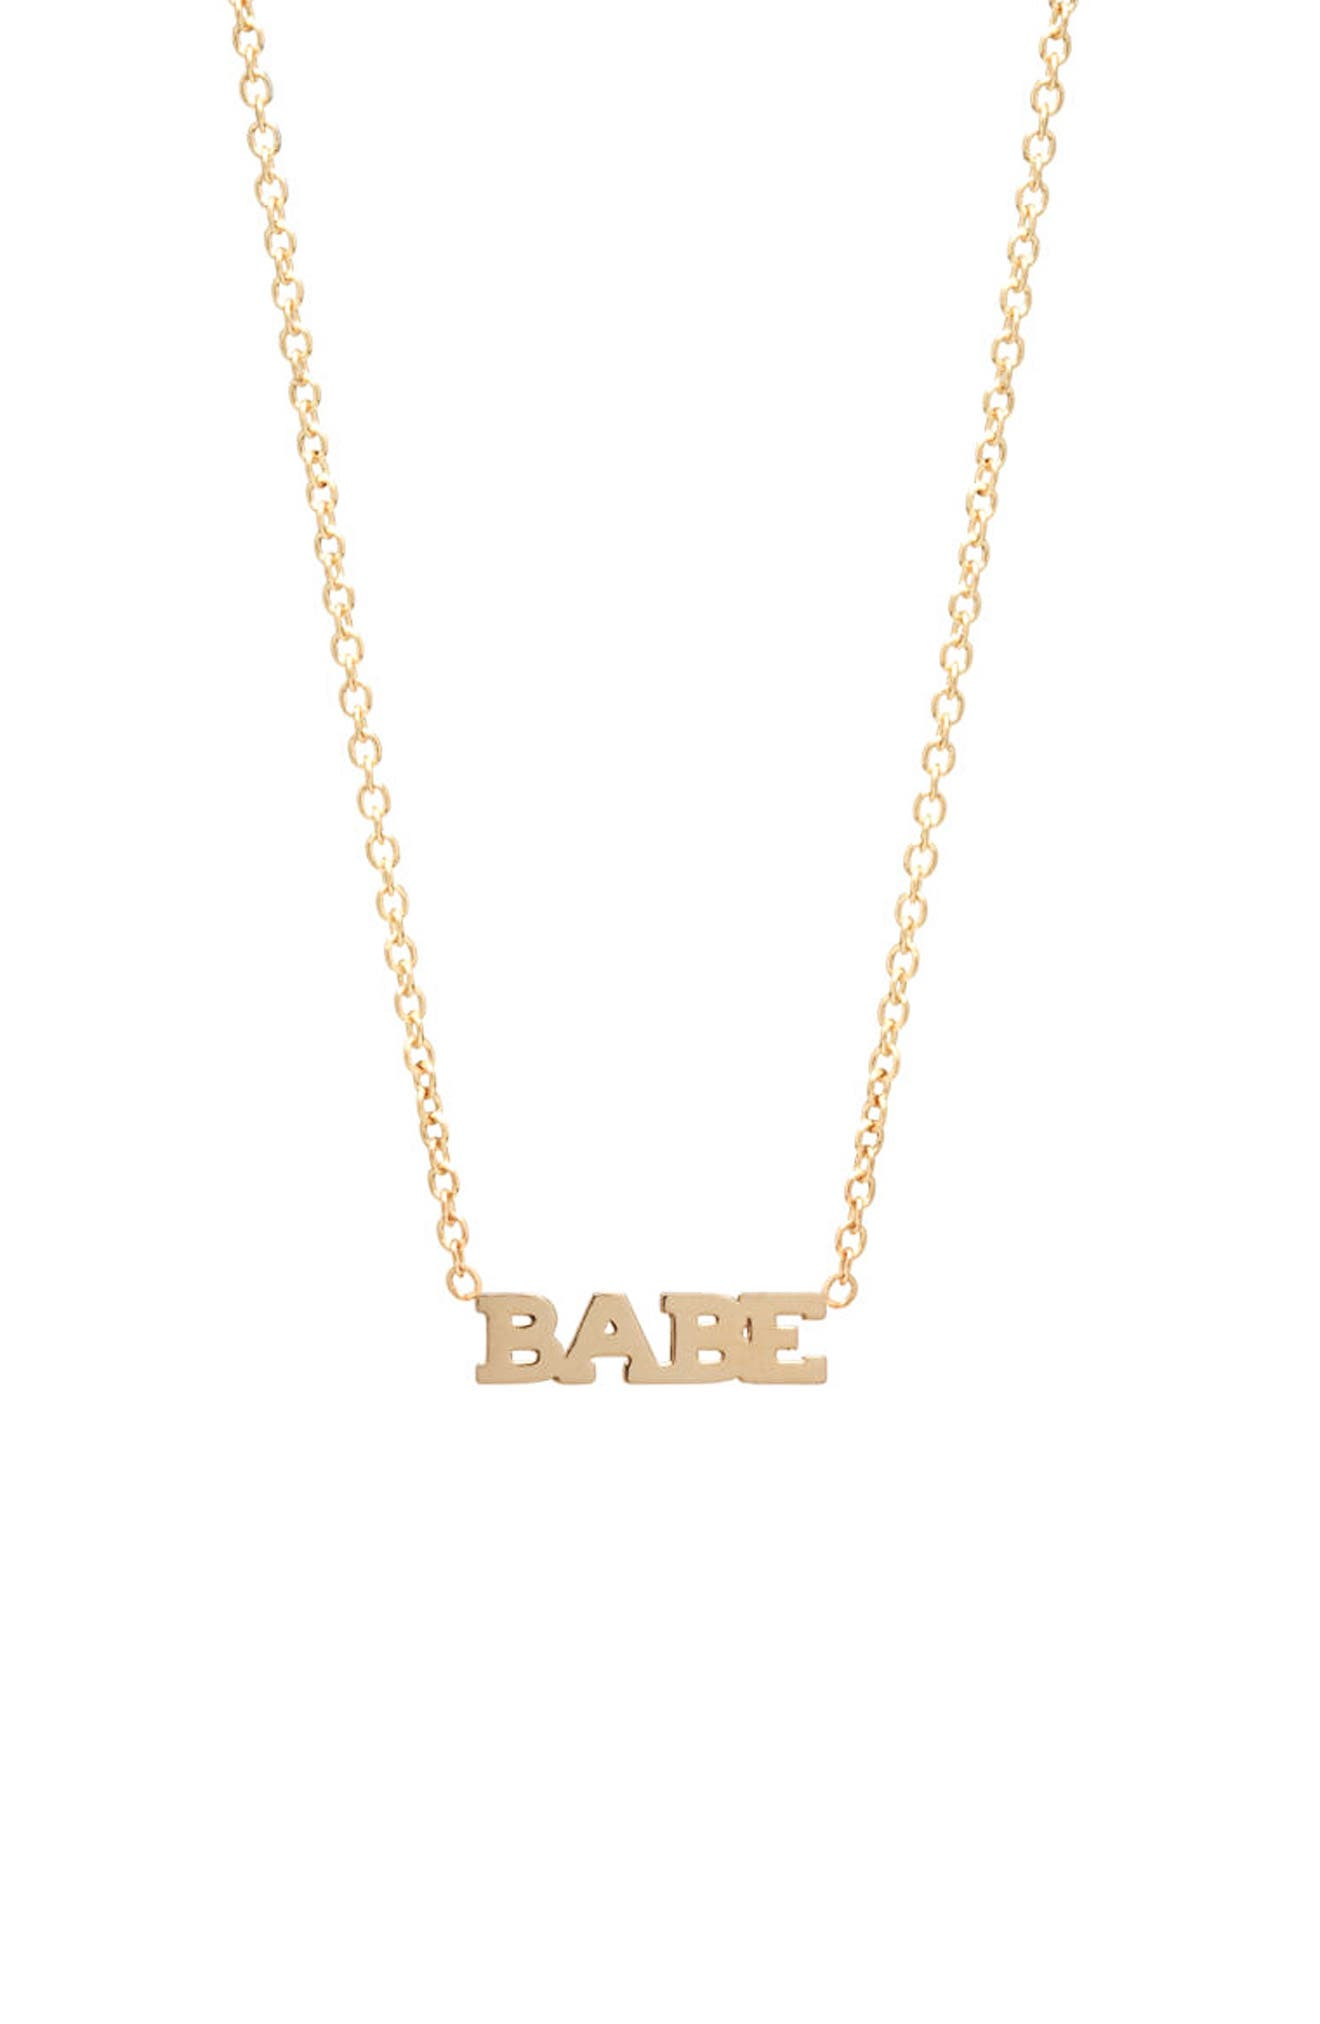 Itty Bitty Typographical Pendant Necklace,                             Main thumbnail 1, color,                             YELLOW GOLD